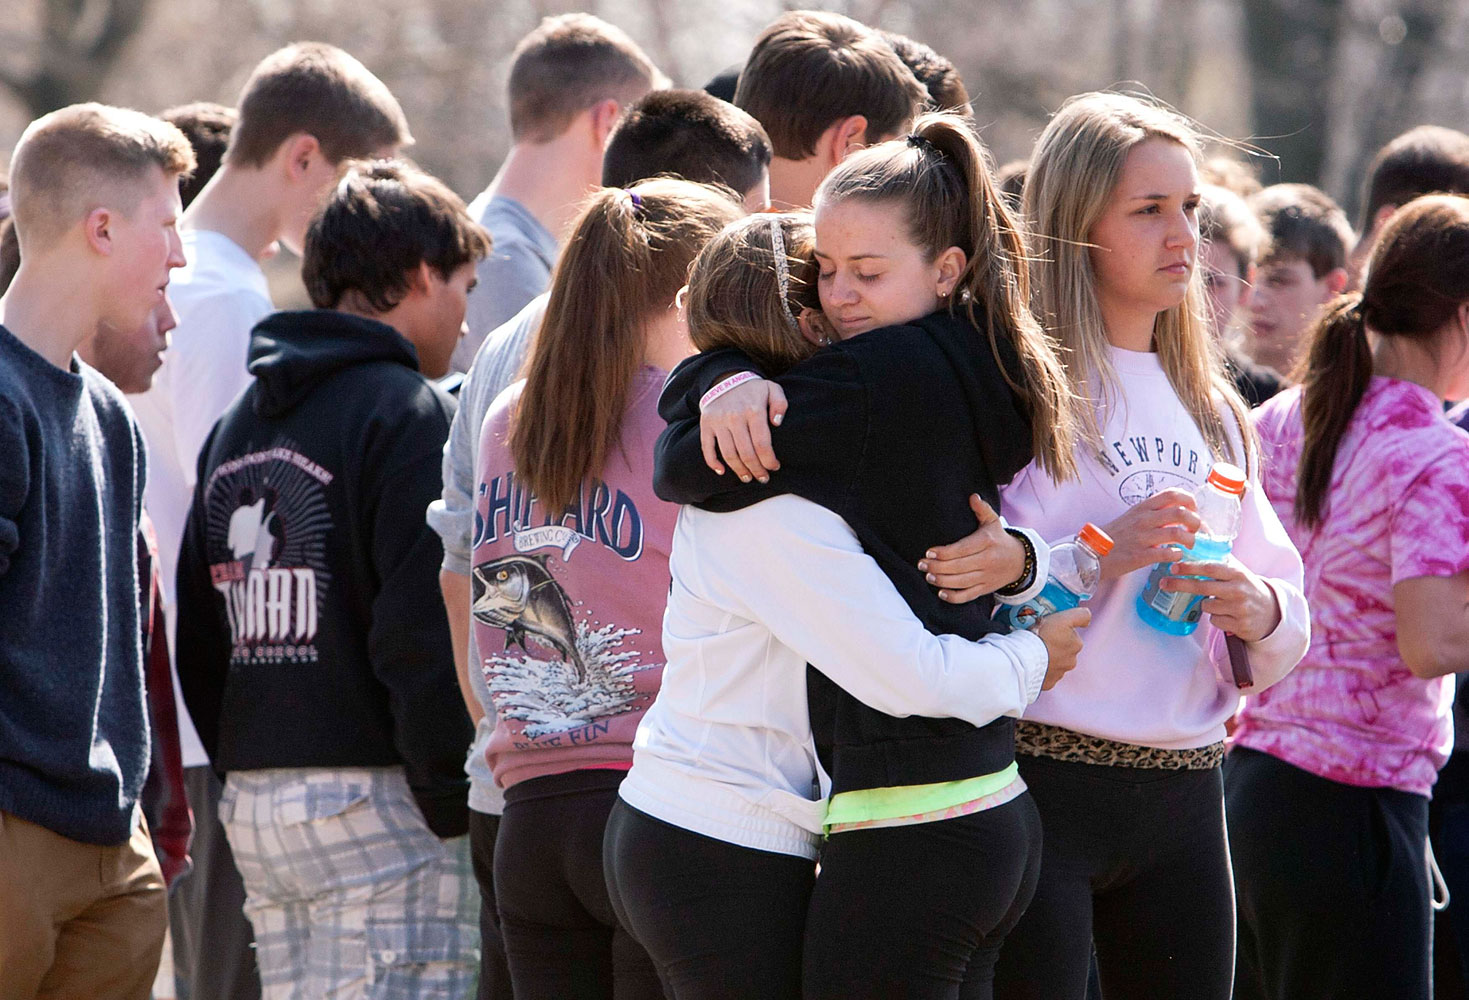 Students mourn in front of Jonathan Law High School in Milford, Conn. April 25, 2014.